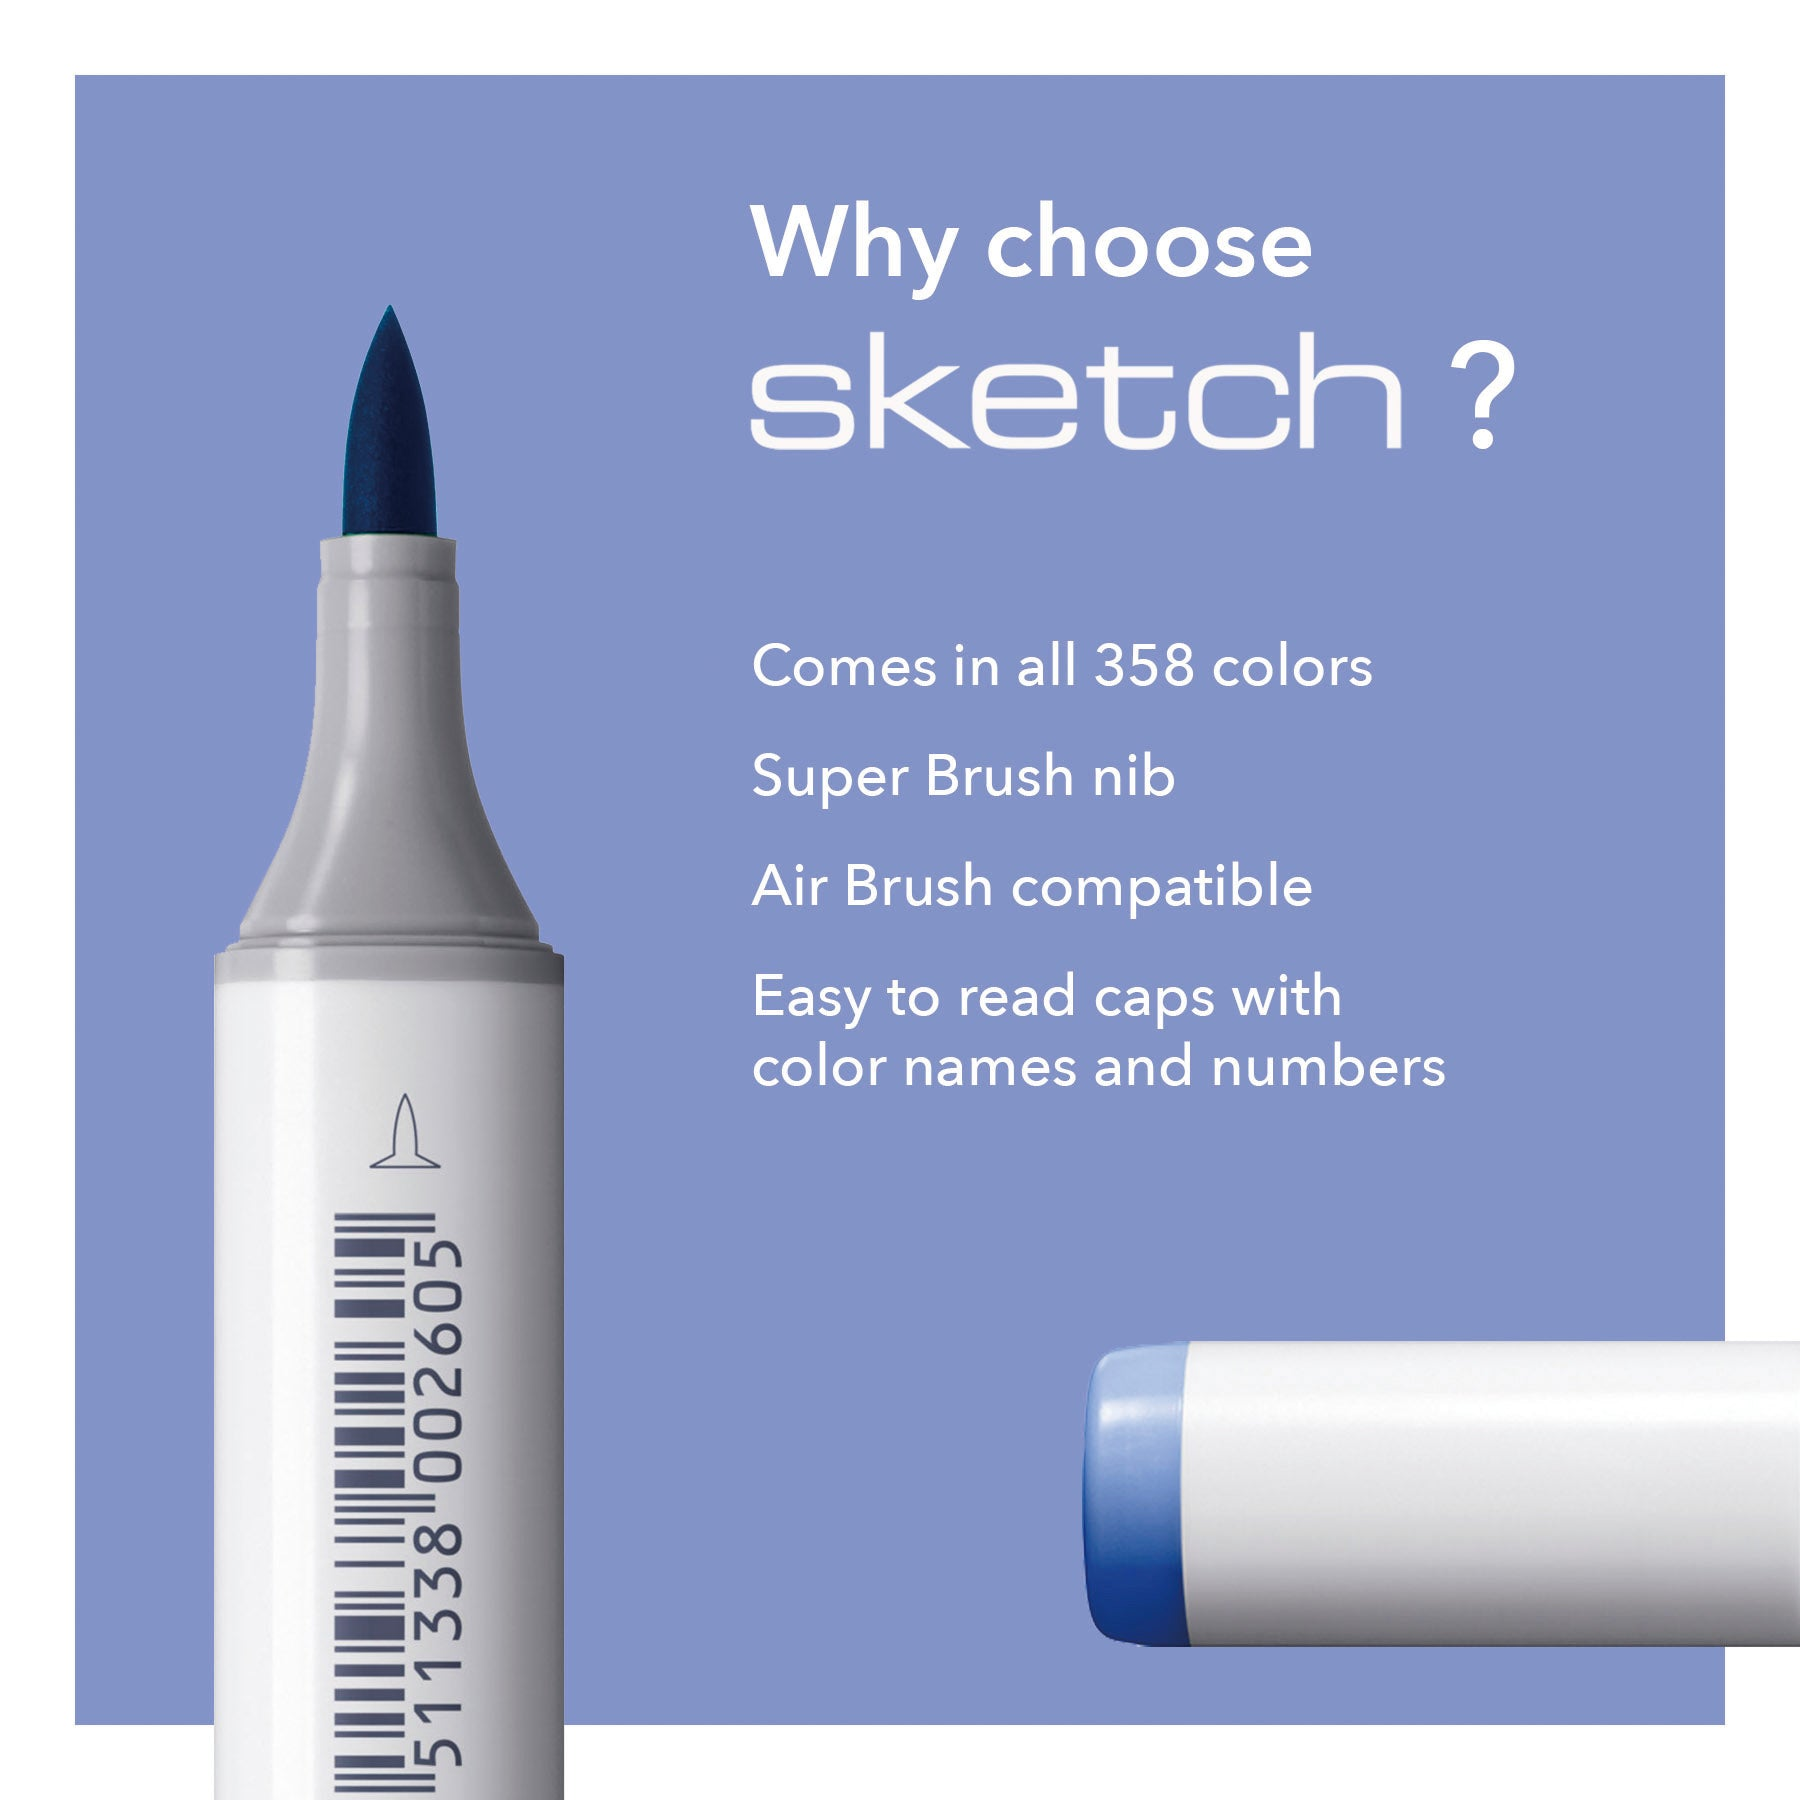 Why choose SKETCH? Comes in all 358 colors, Super Brush nib, Air Brush compatible, Easy to read caps with color names and numbers